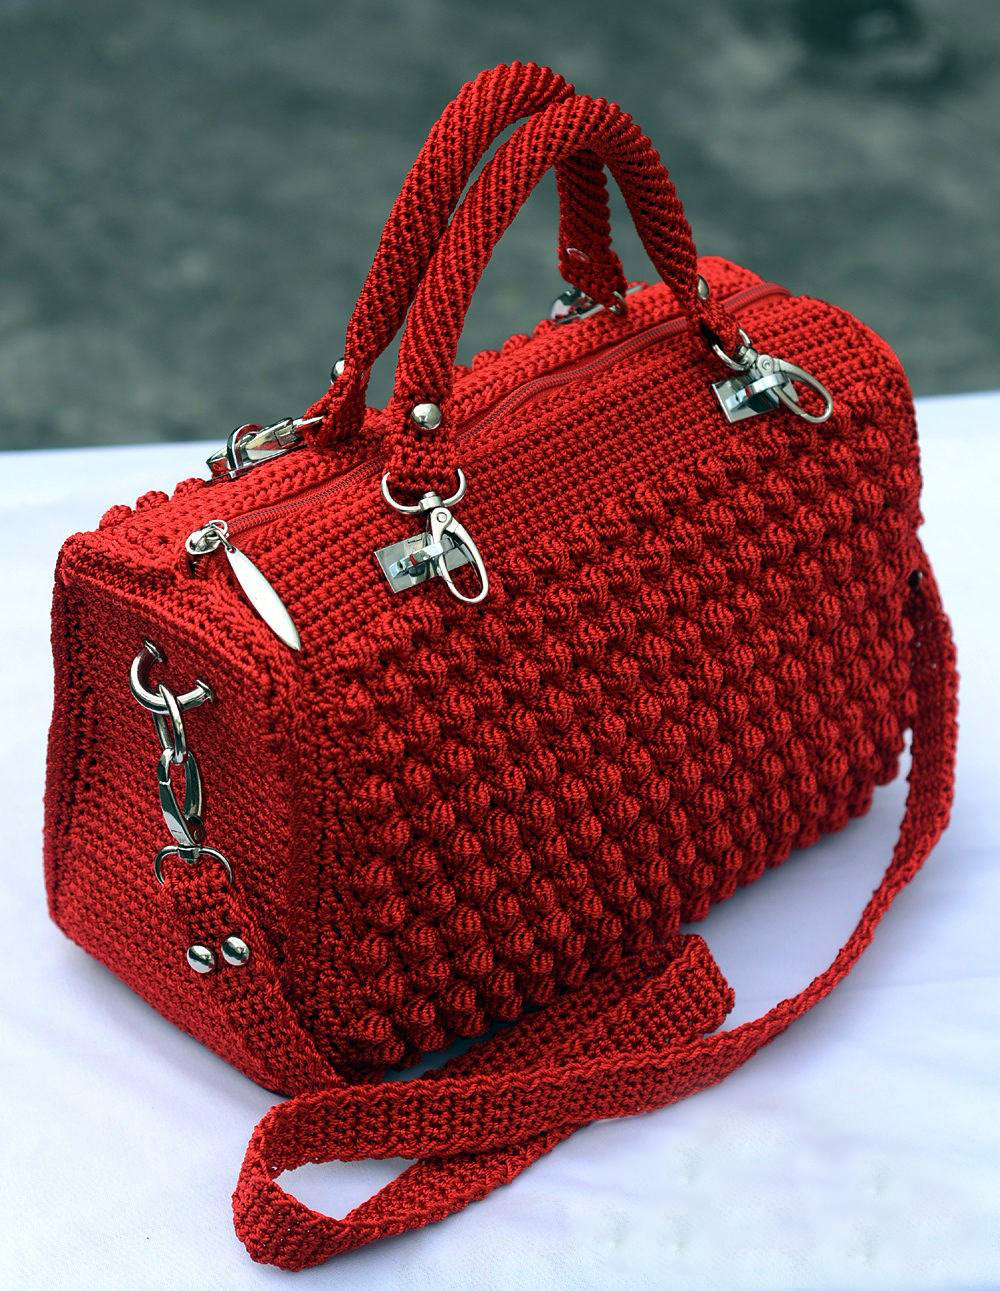 Patron Bolso Tipo Chanel En Ganchillo Crochet Comando Craft - Bolsos-ganchillo-crochet